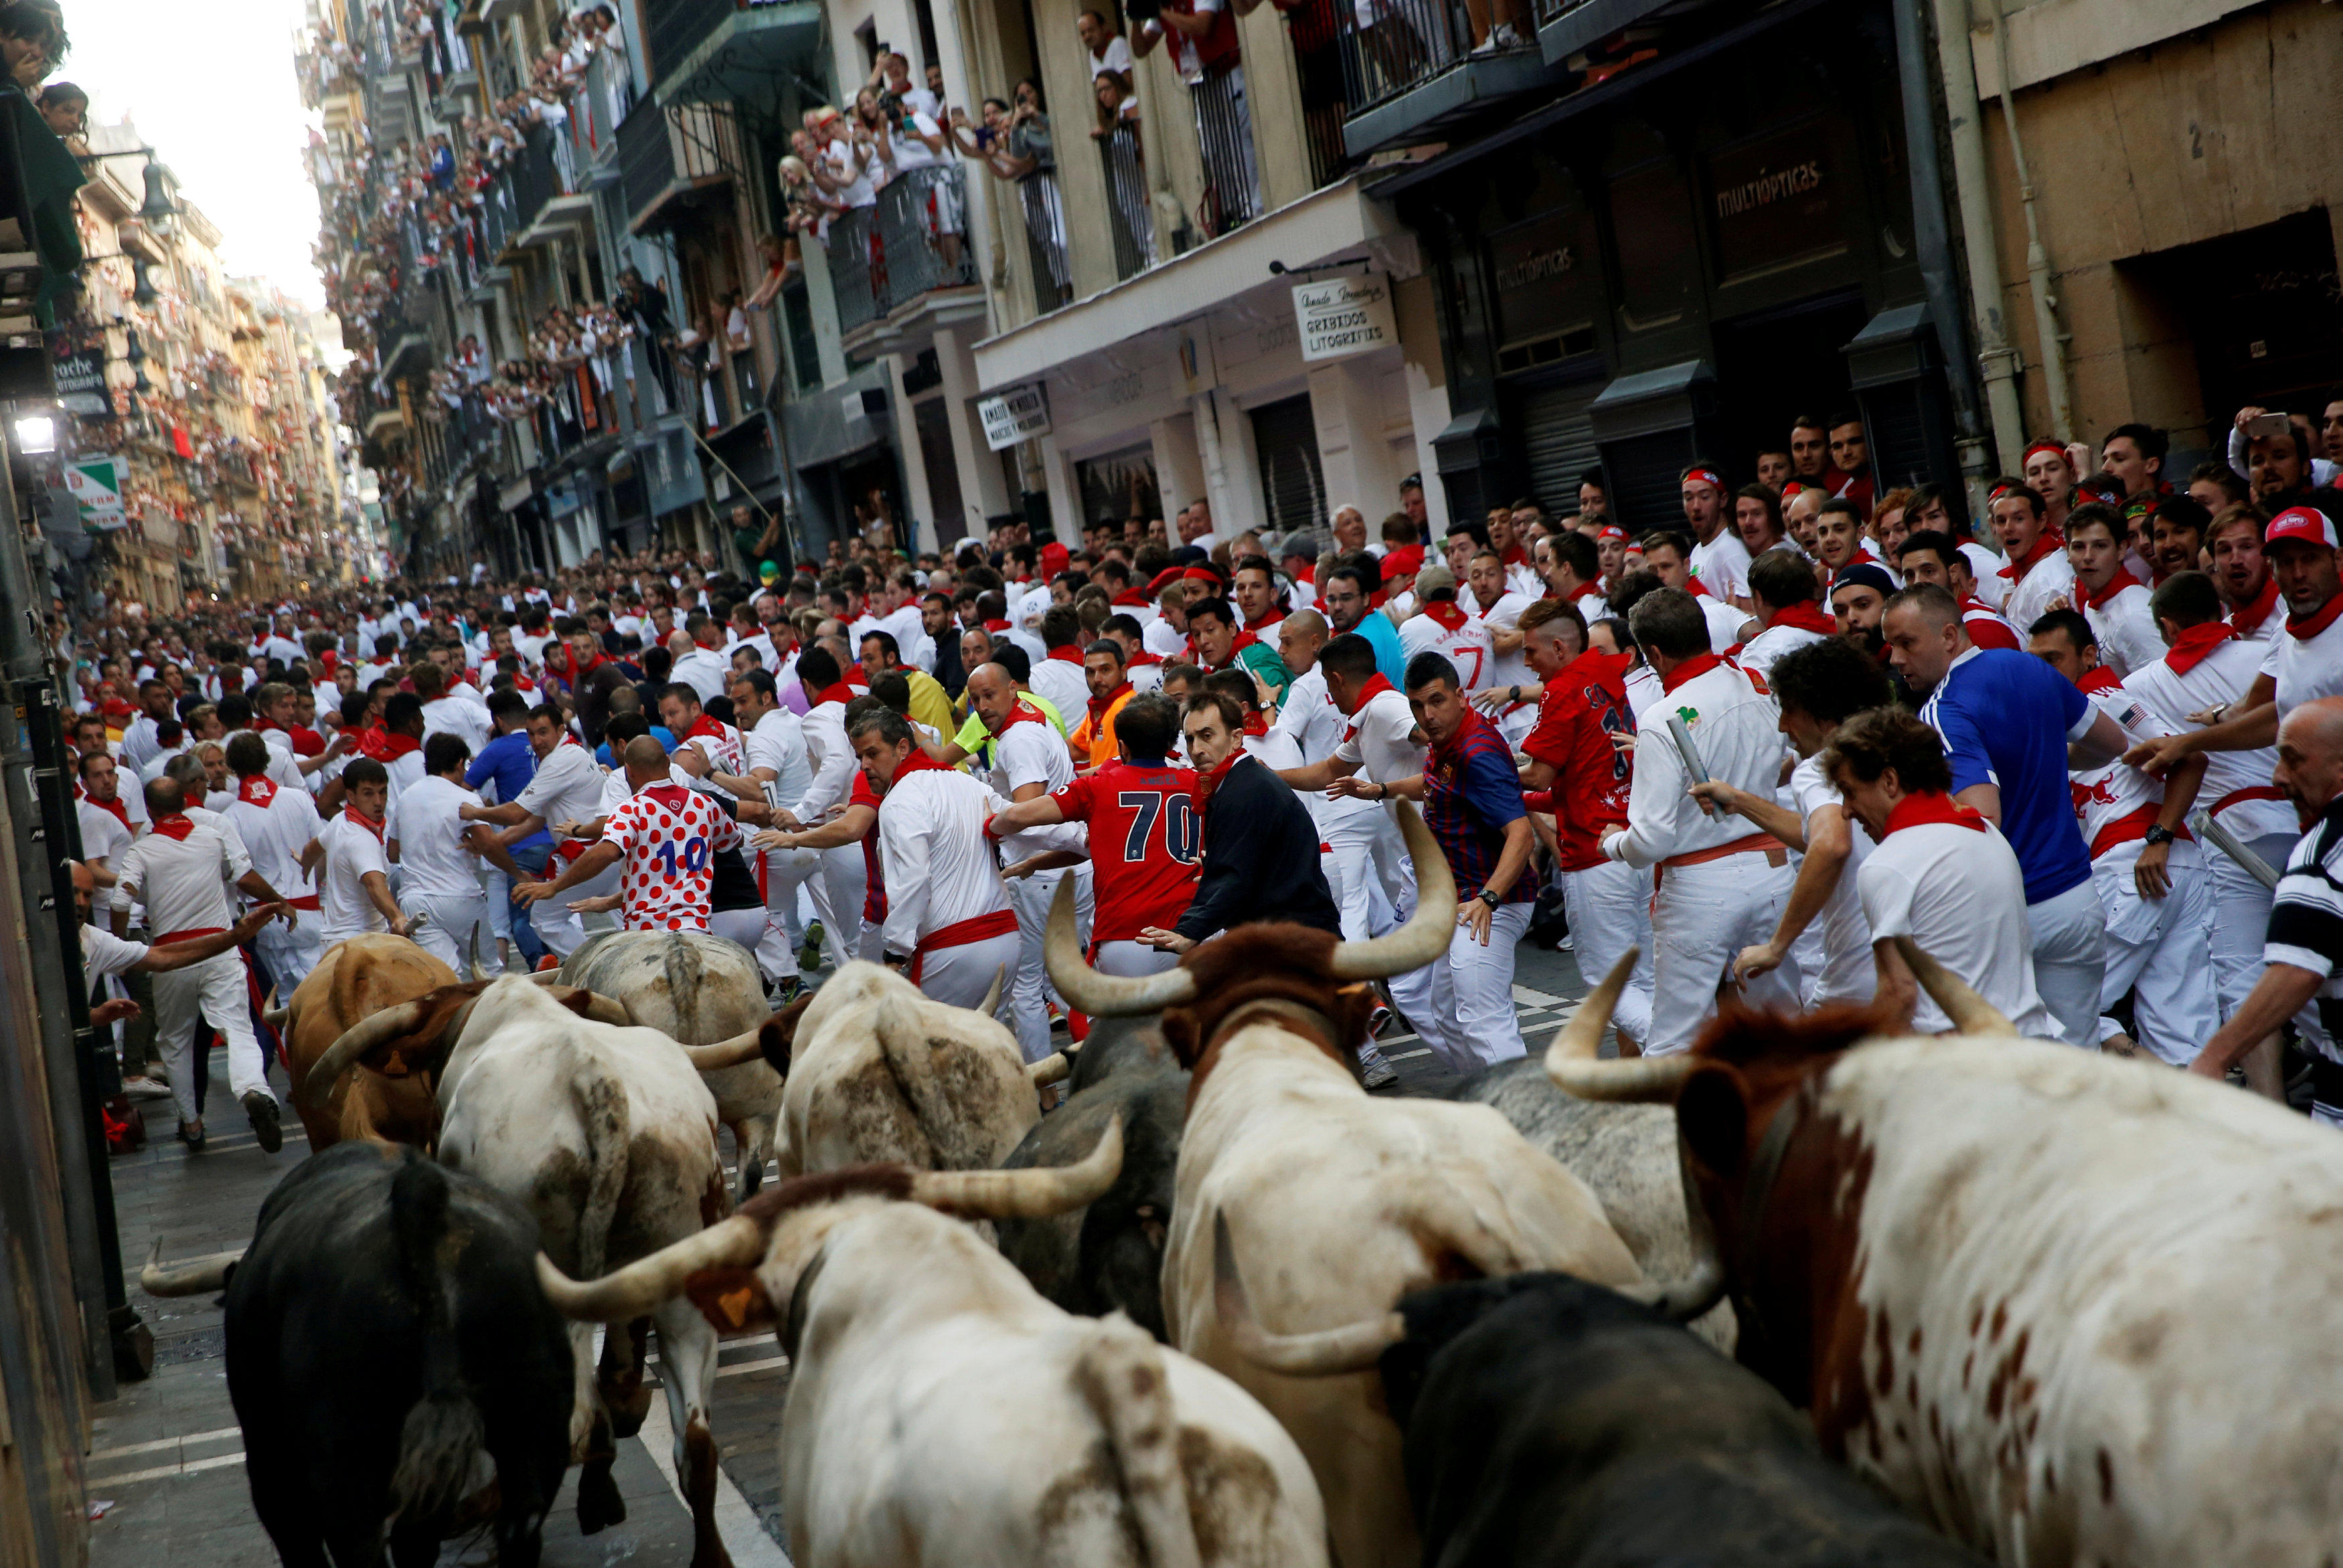 Americans gored running with the bulls at san fermin for Pisos en san fermin madrid